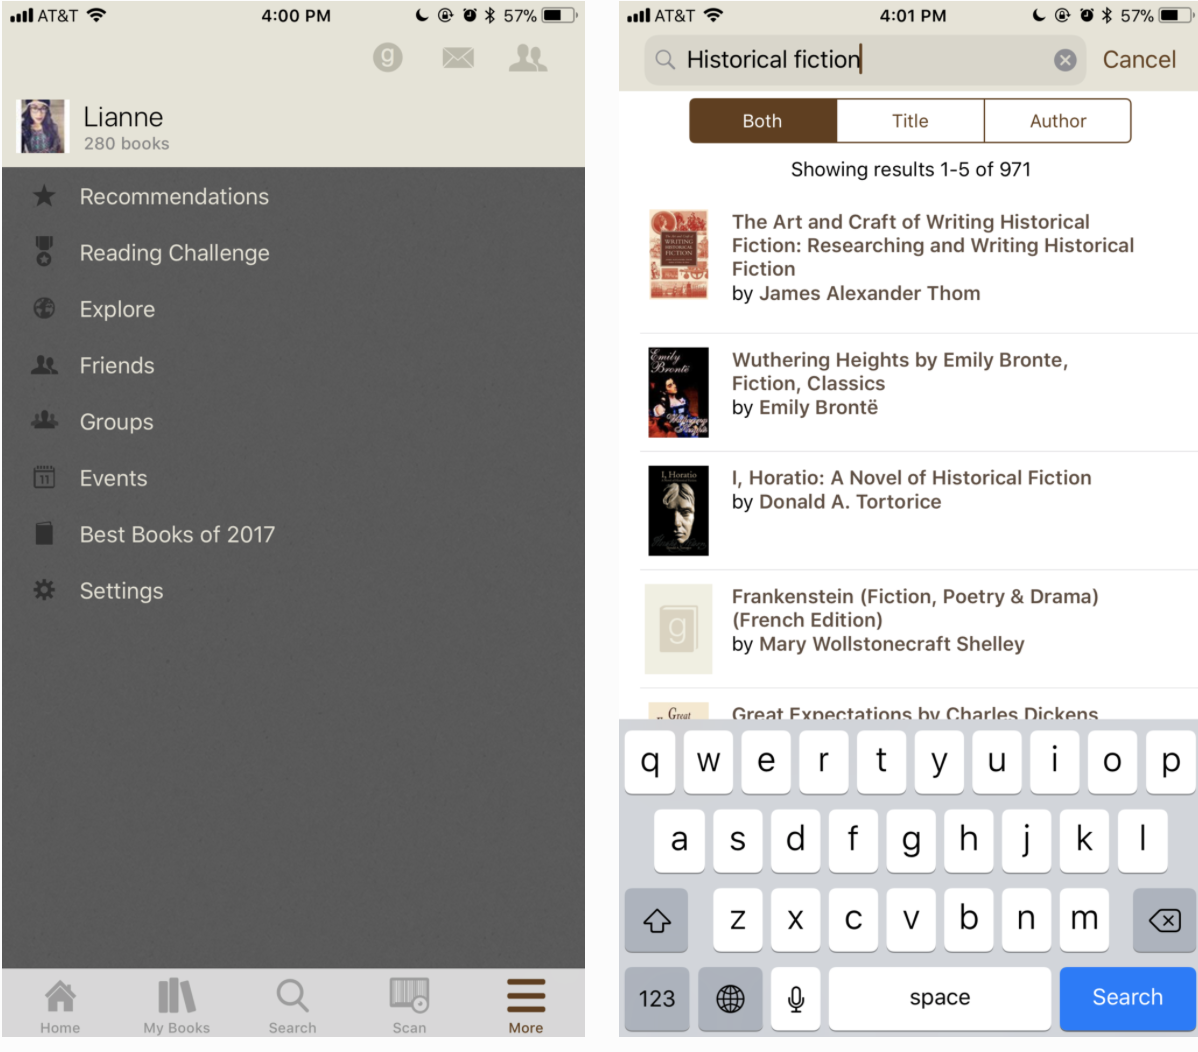 Rethinking the Goodreads iOS Experience -